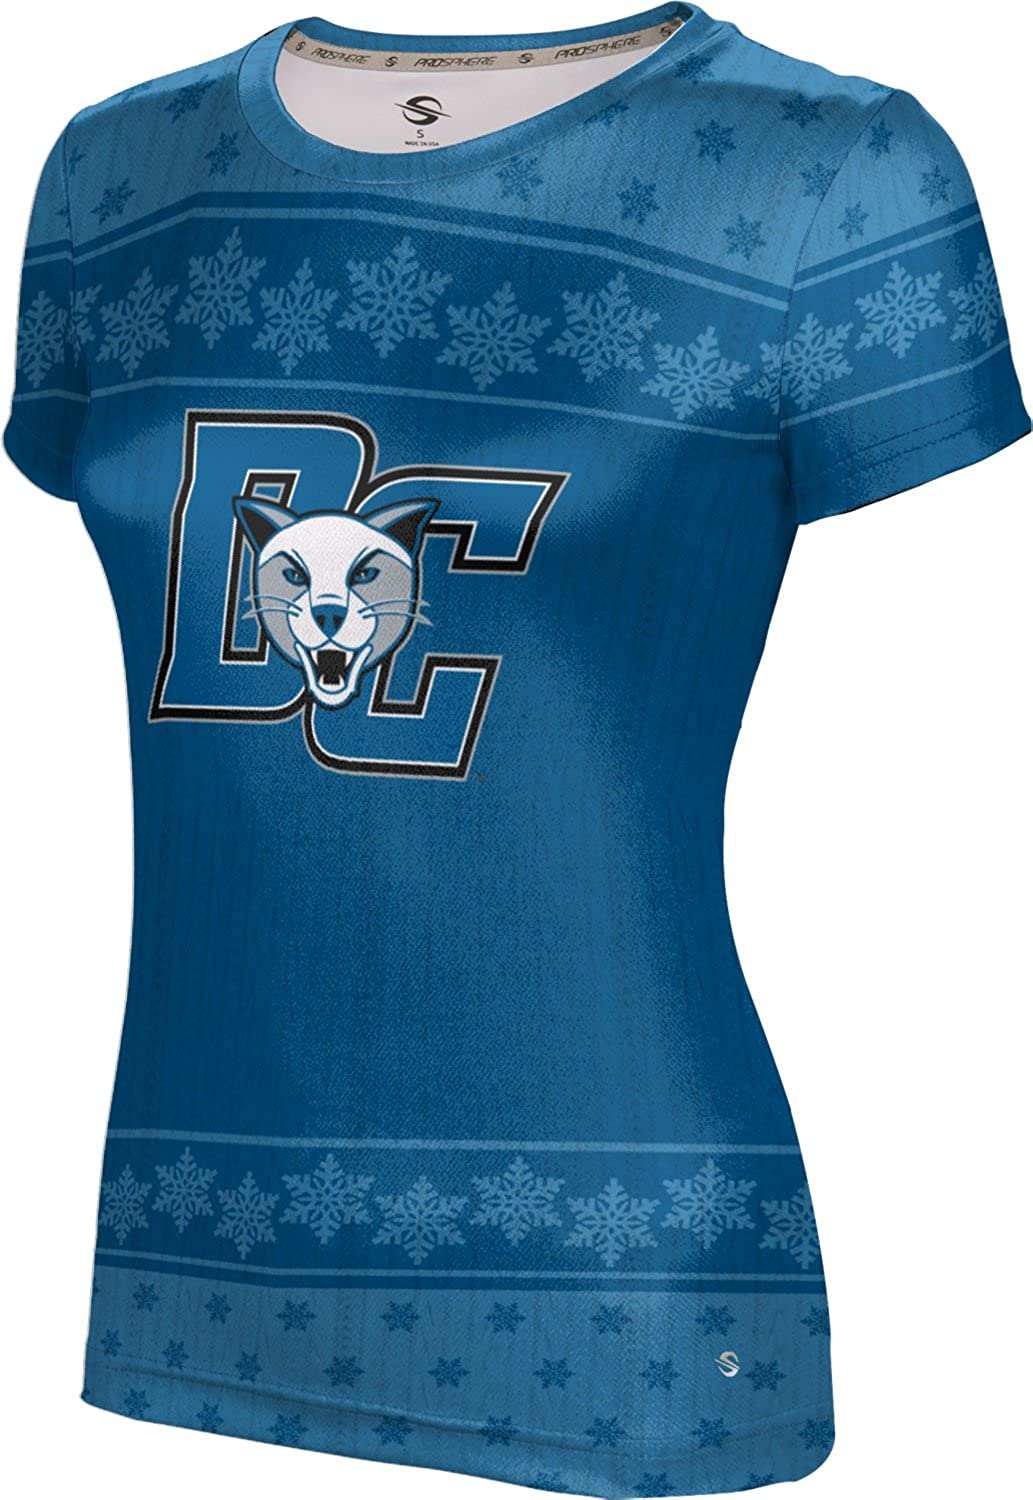 ProSphere Women's Daemen College Ugly Holiday Snowflake Tech Tee